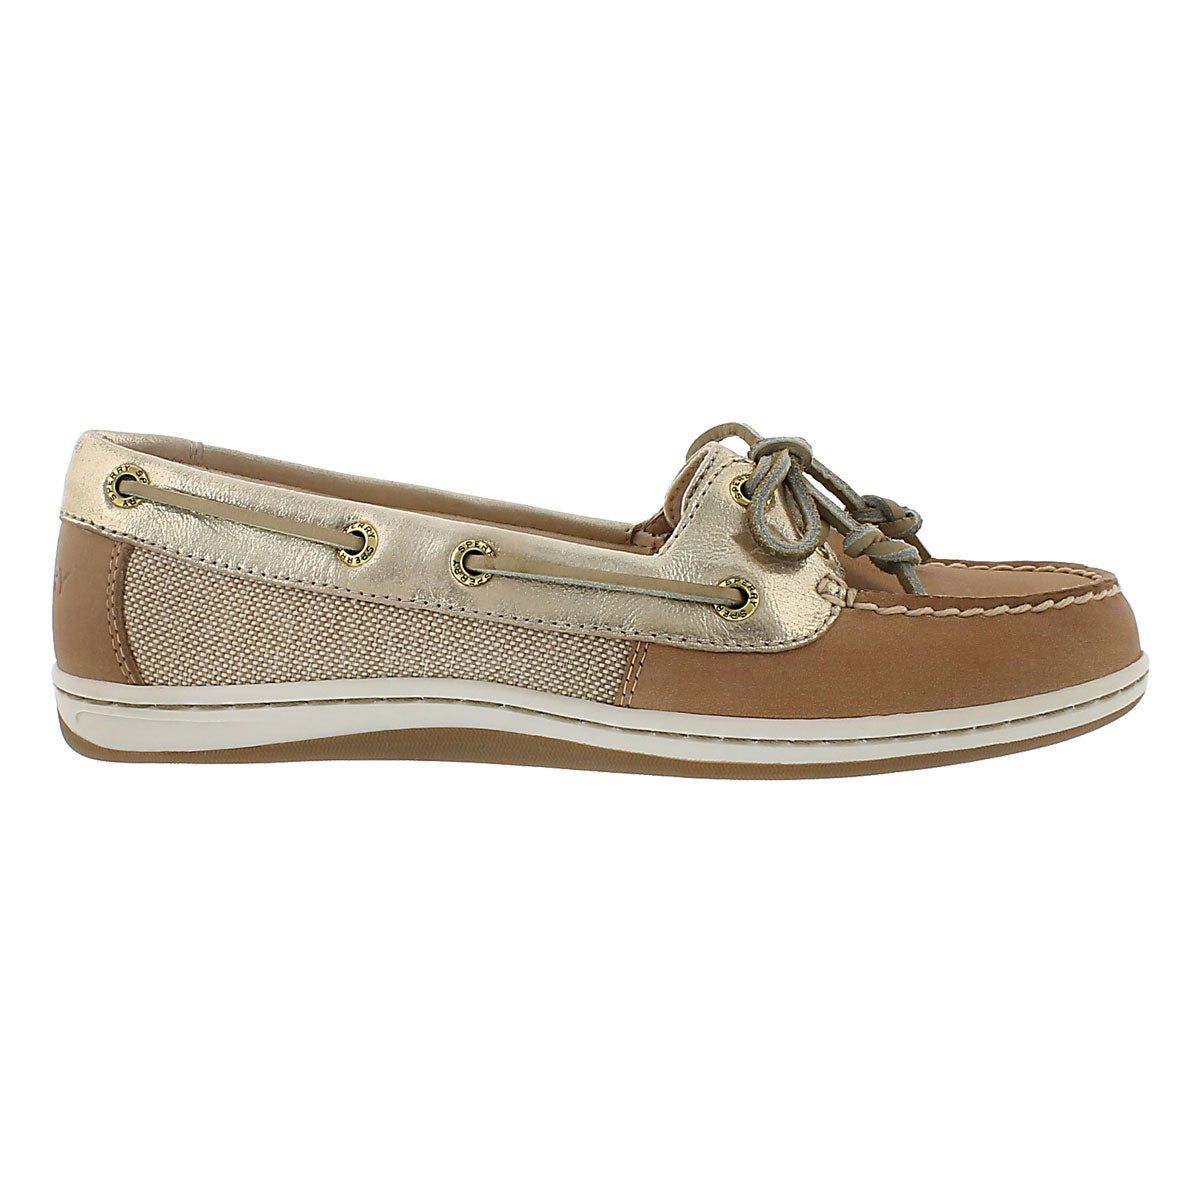 Lds Firefish linen/gold 2 Eye boat shoe